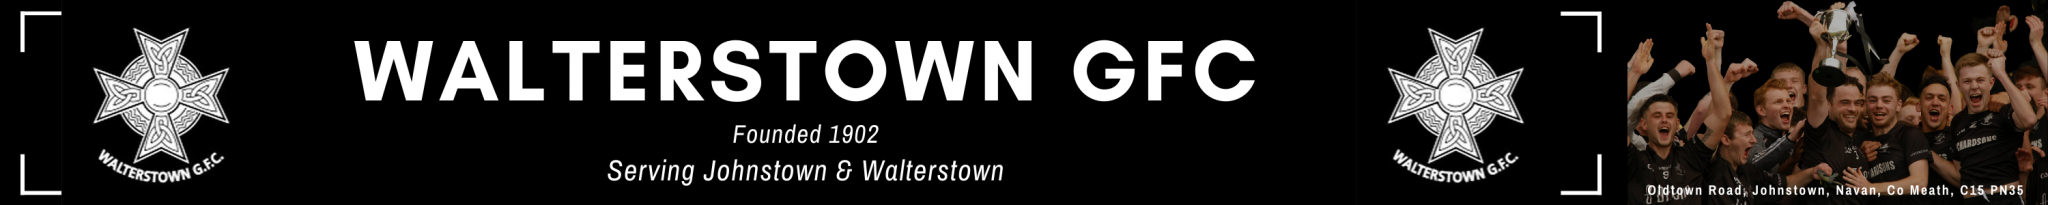 Walterstown Gaelic Football Club Logo